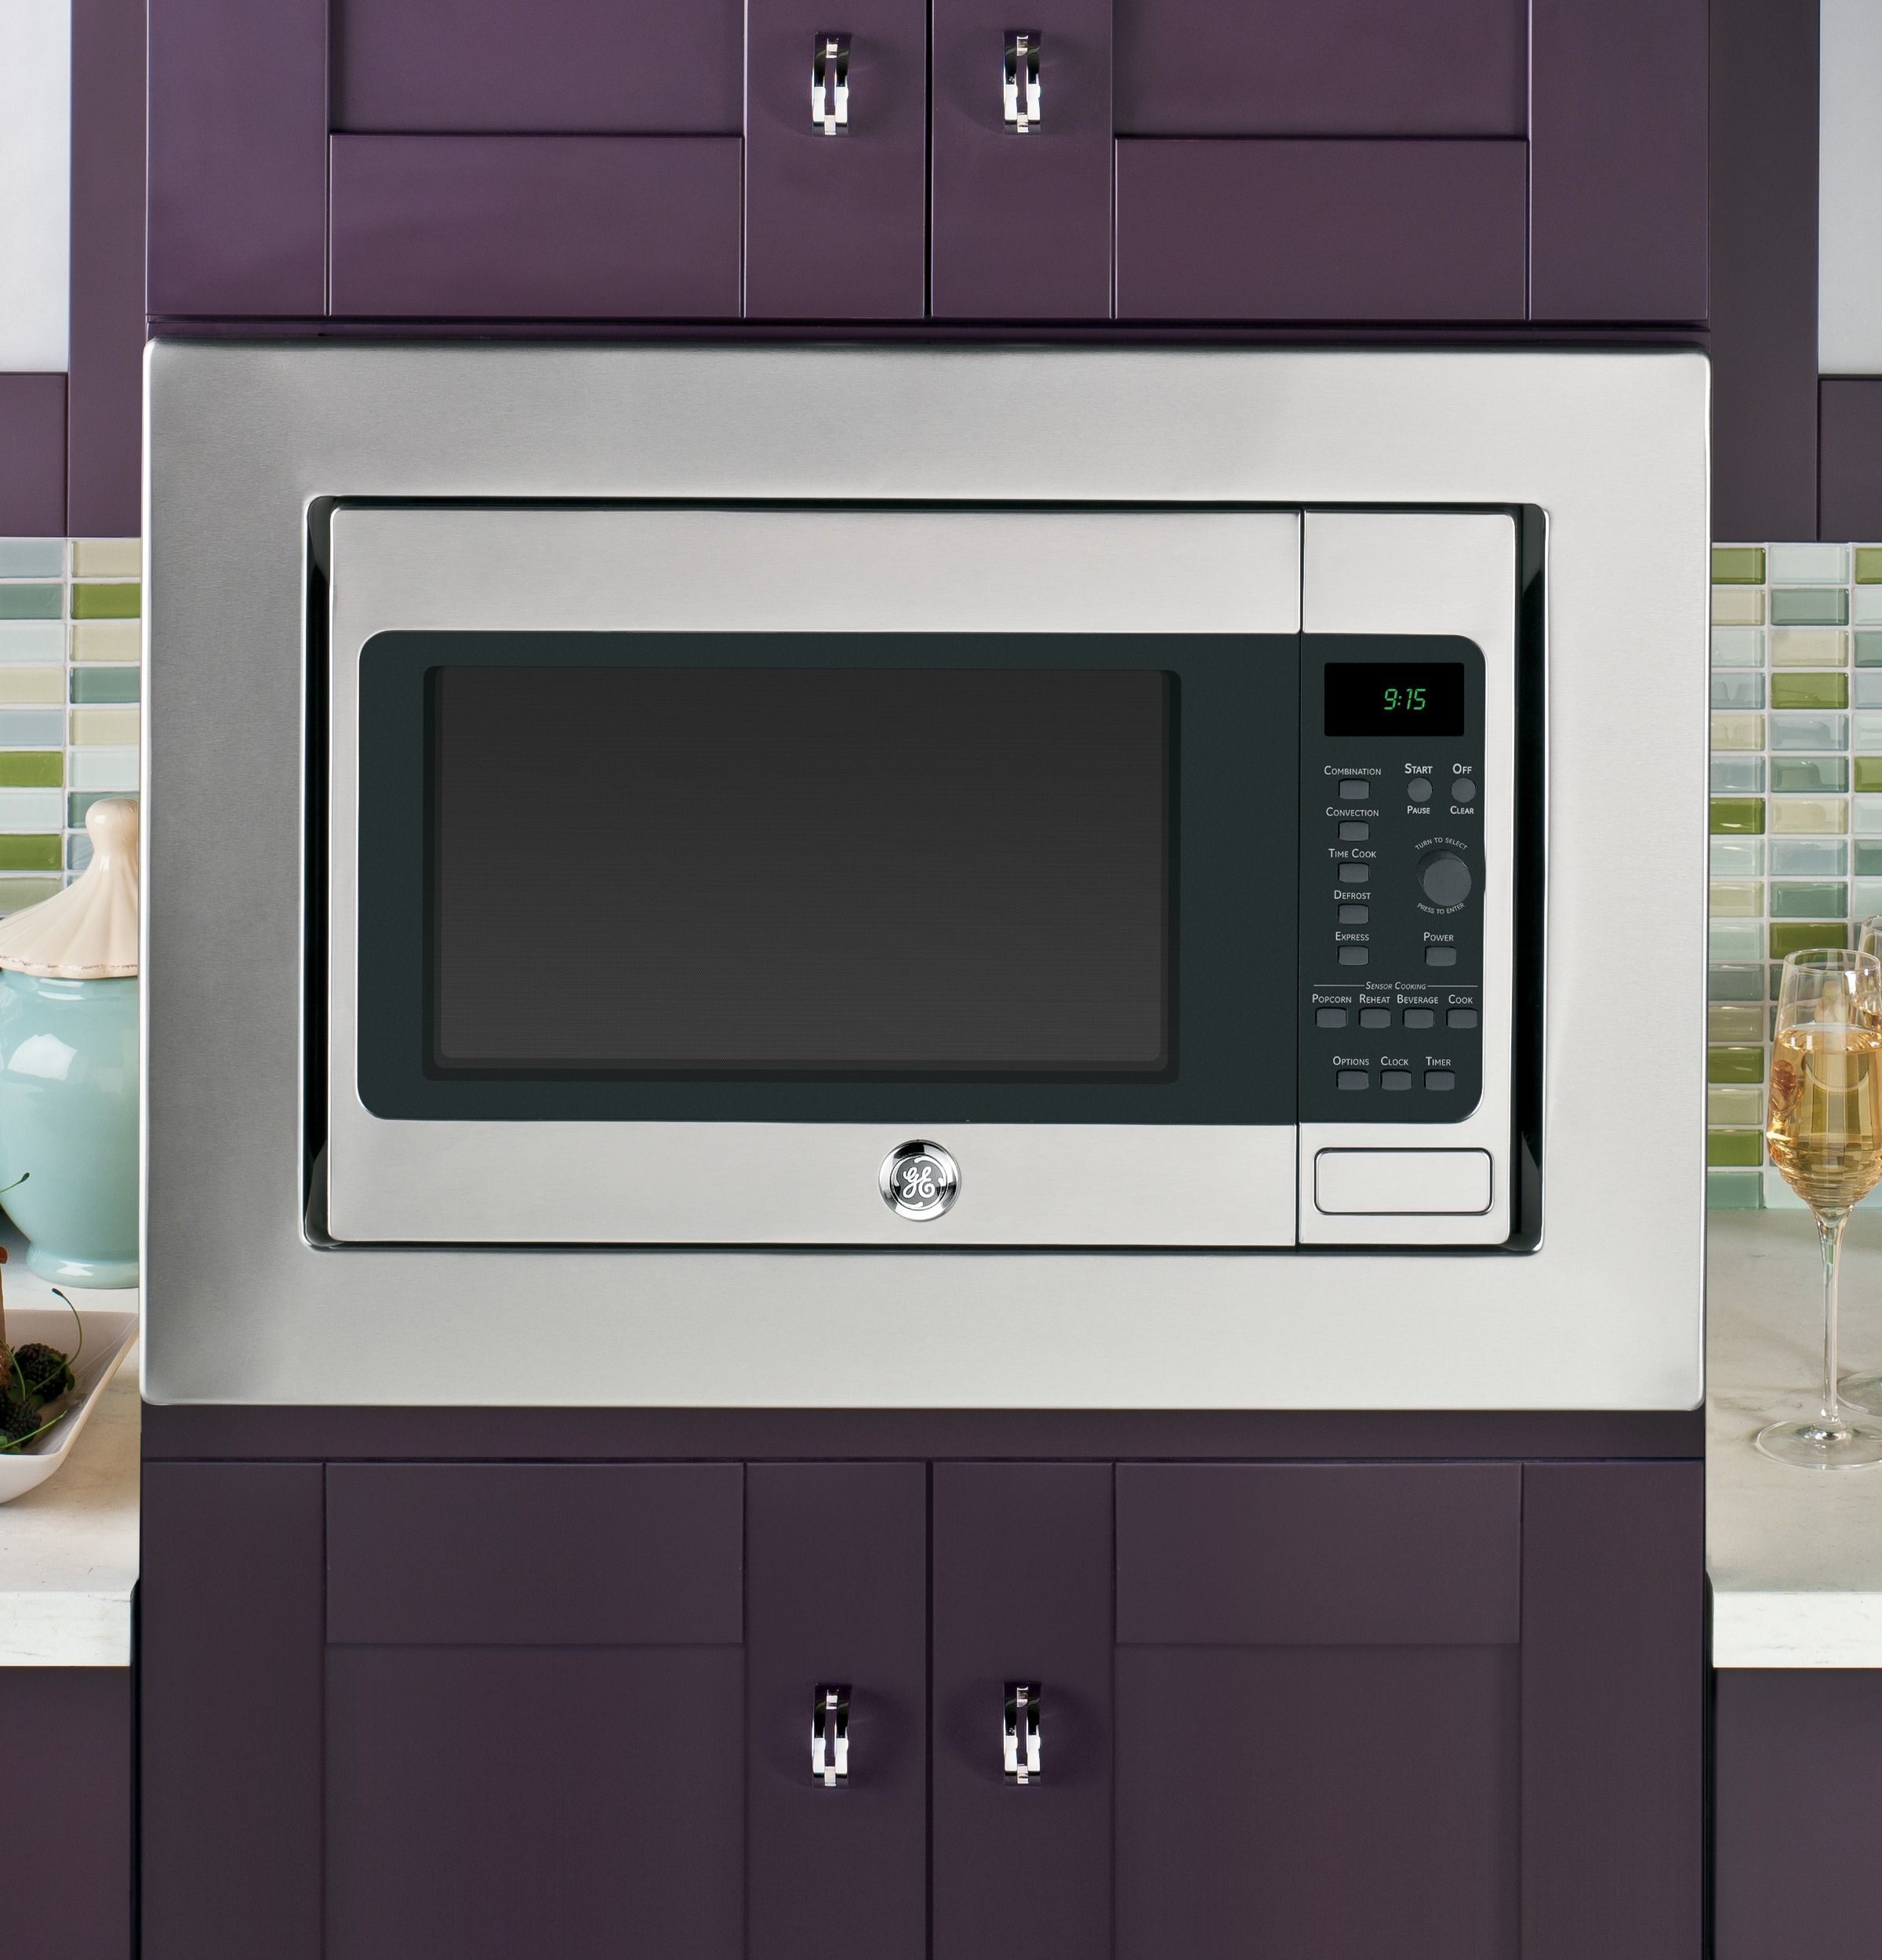 Peb9159sfss Ge Profile Series 1 5 Cu Ft Countertop Convection Microwave Oven